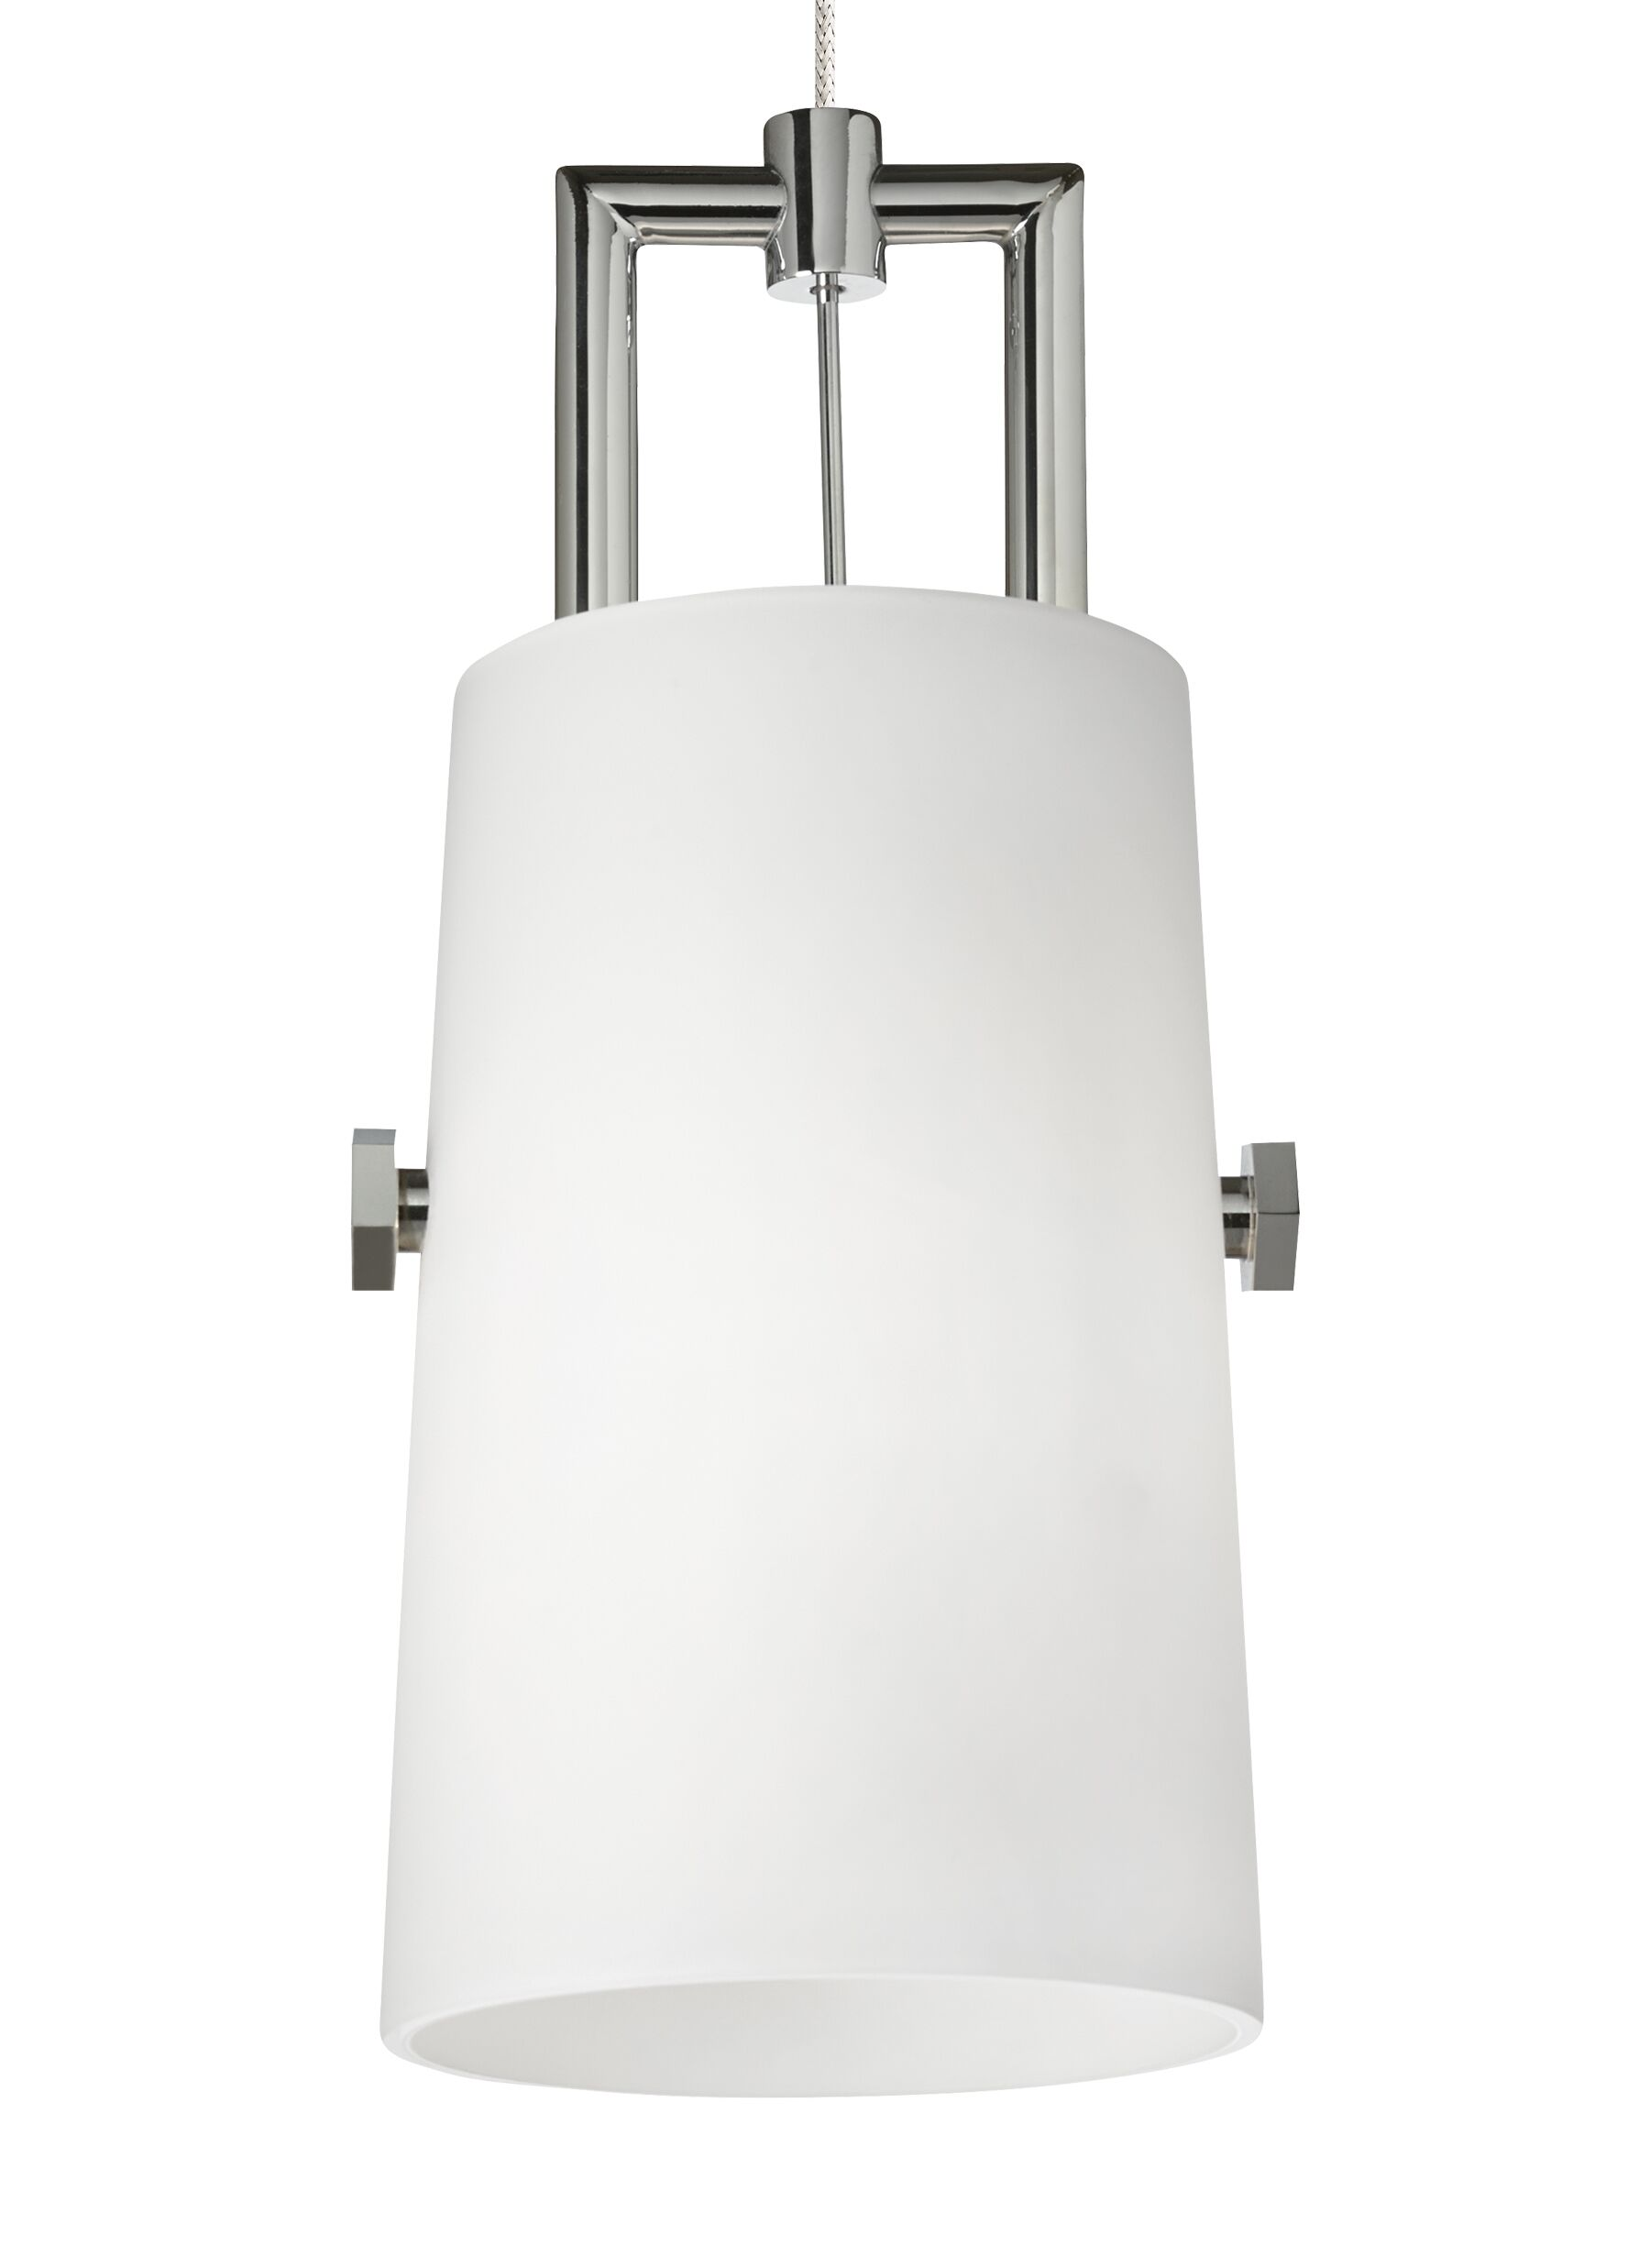 Revere Monopoint 1-Light Cylinder Pendant Finish: Chrome/Chrome, Bulb Type: Incandescent, Shade Color: White